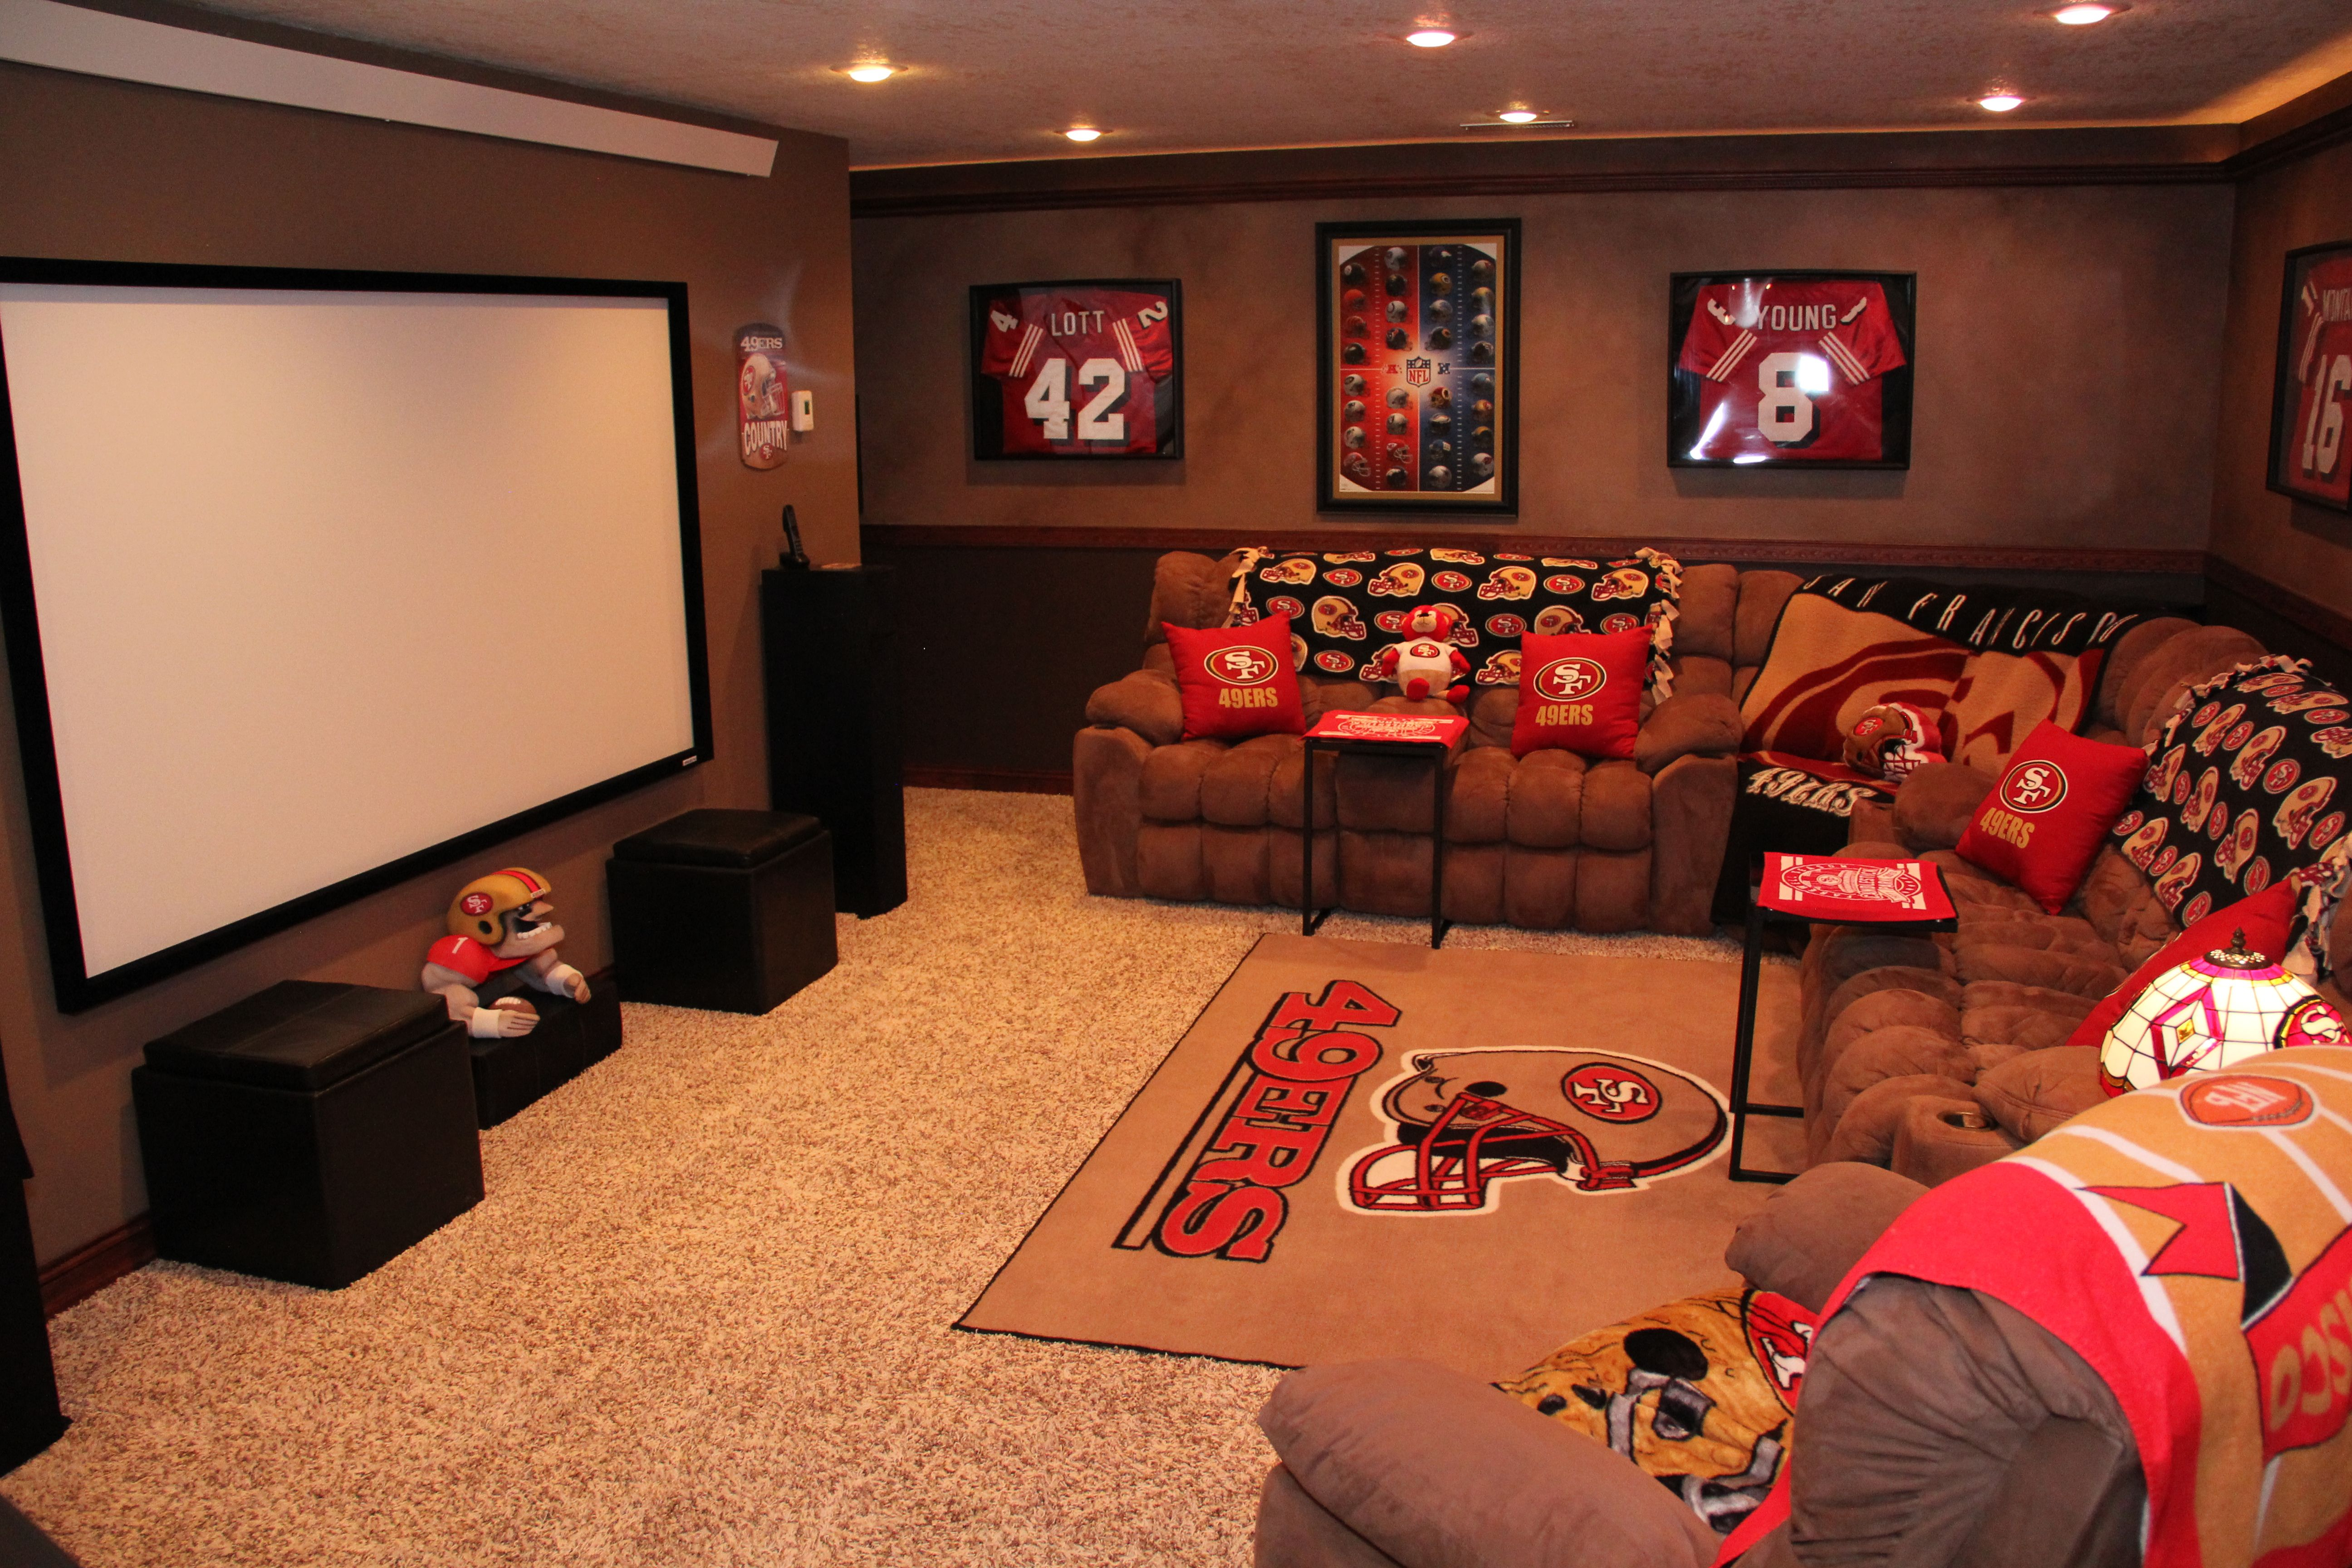 Hubby S 49er Mancave I Did For Him Man Cave Sports Man Cave Man Cave Home Bar